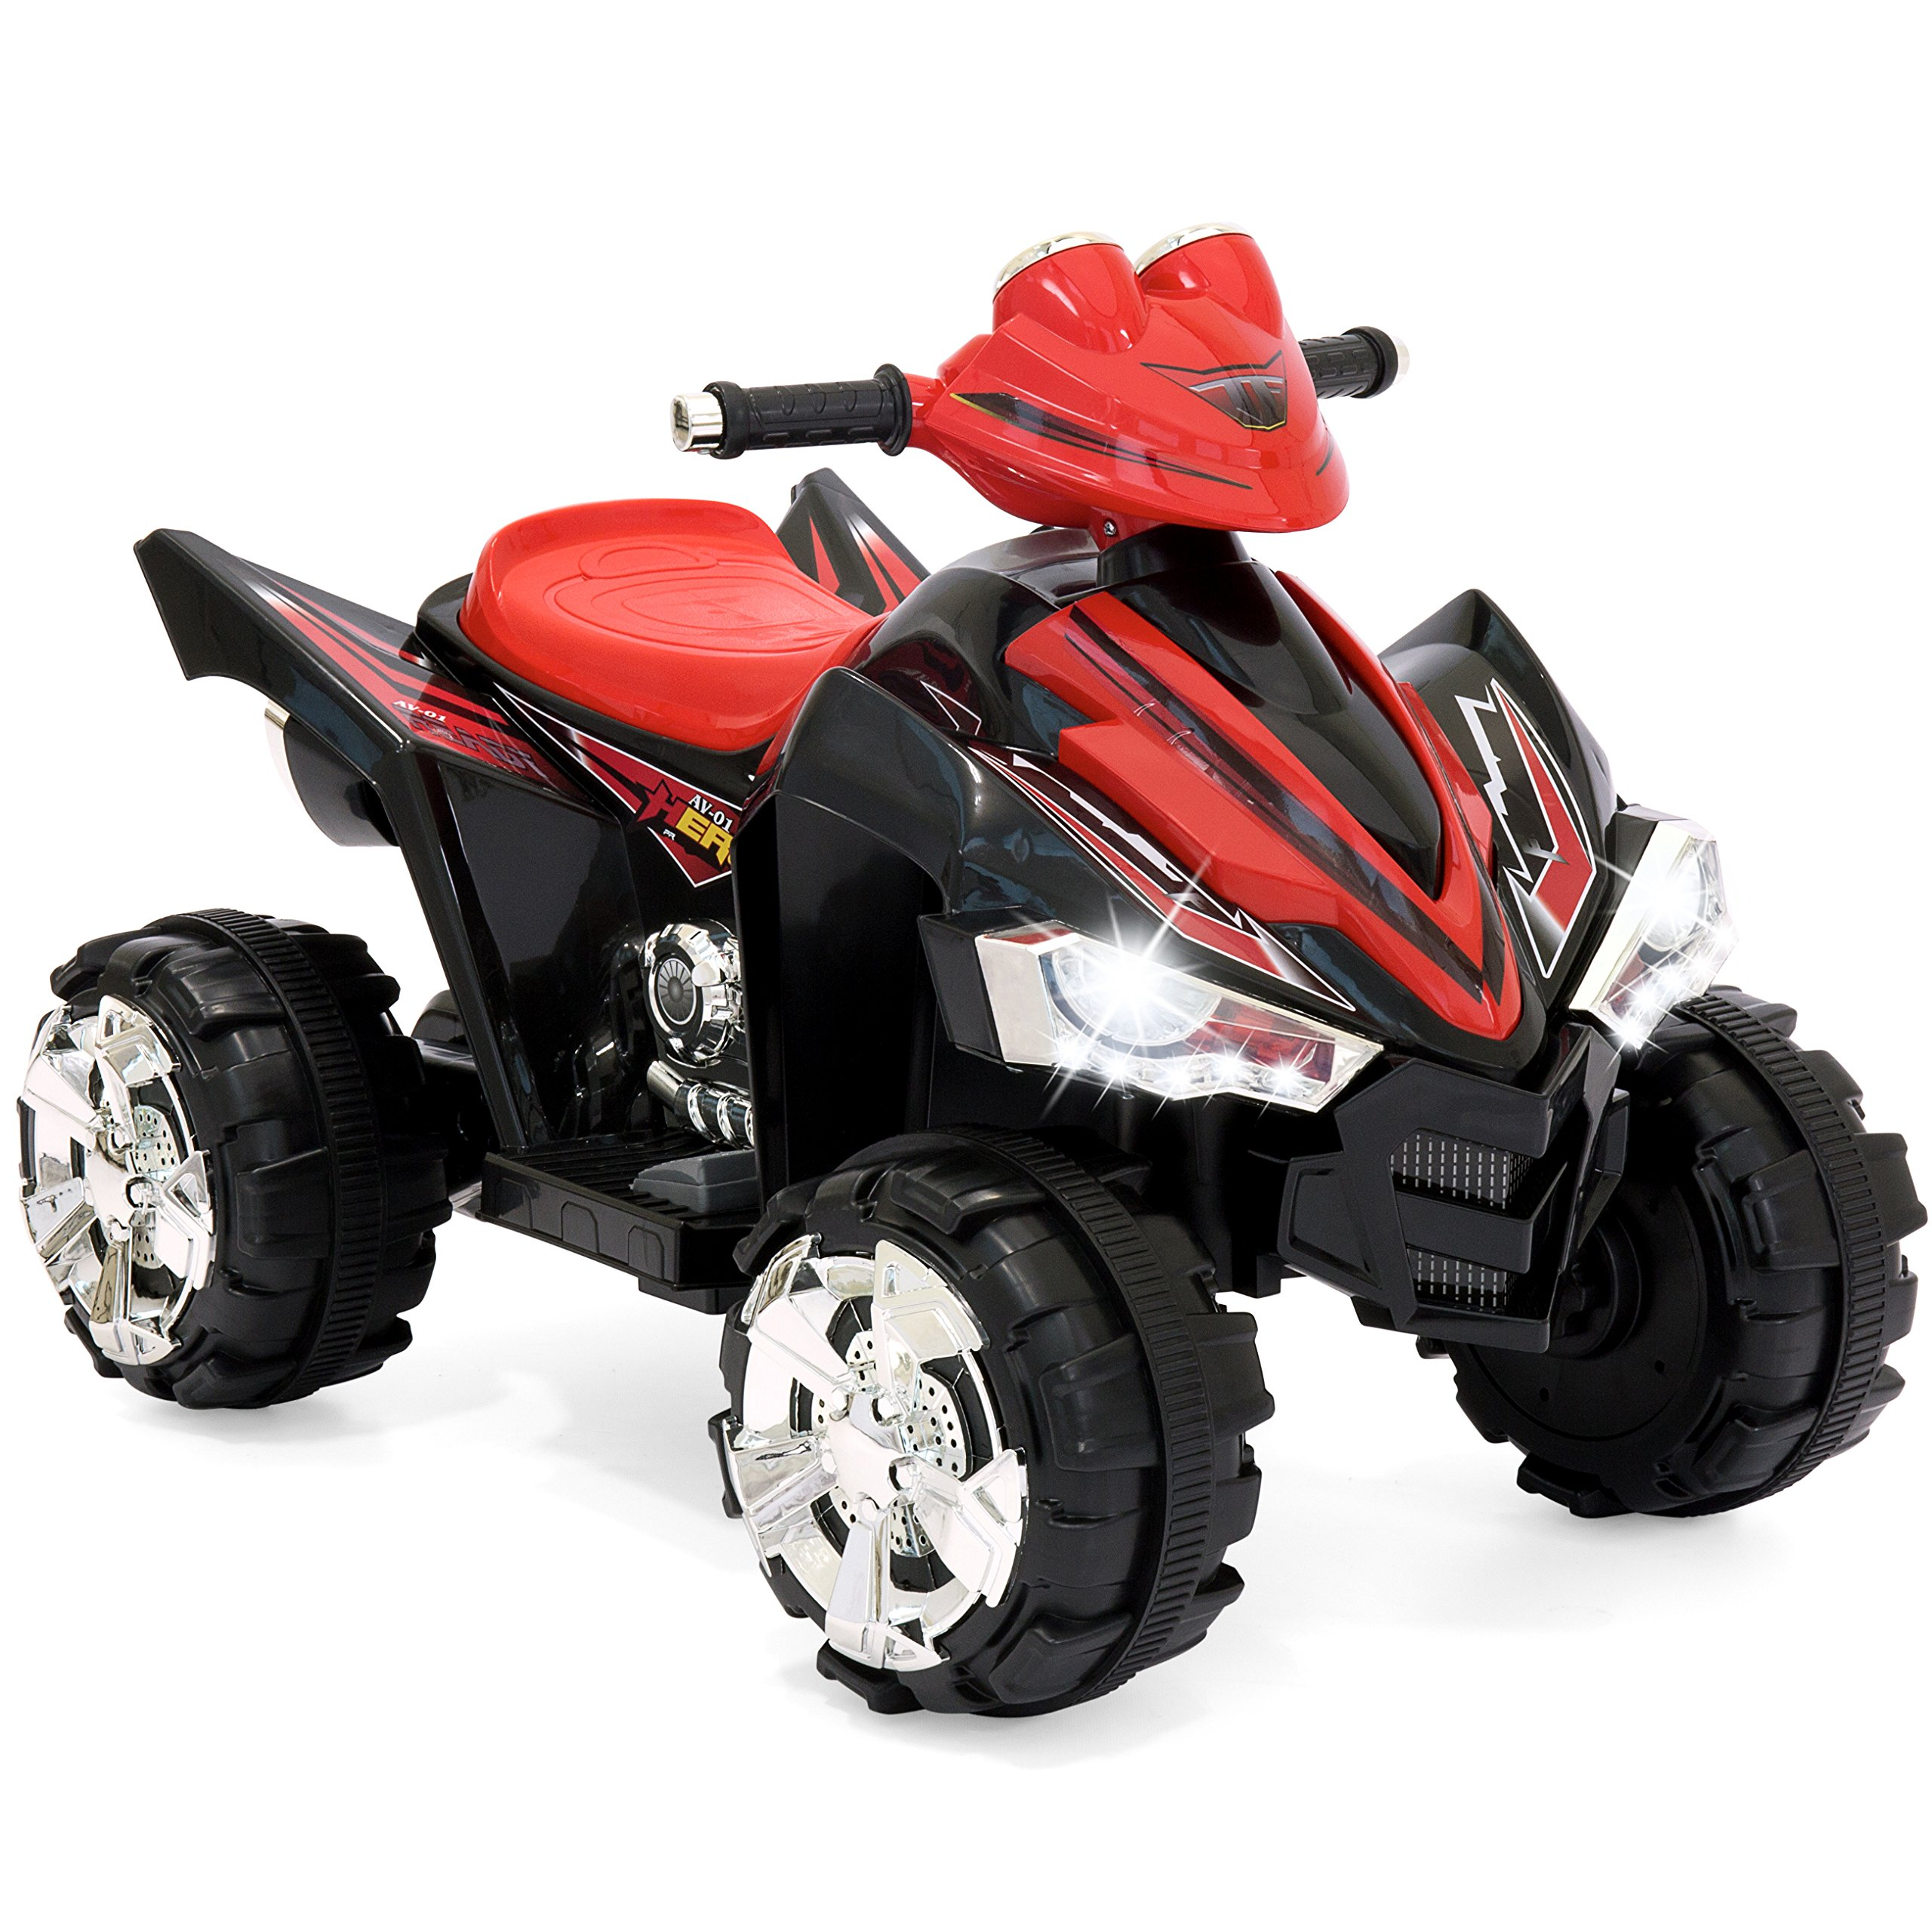 Best Choice Products 12V Kids Battery Powered Electric 4-Wheeler Quad ATV Ride On Toy w/ 2 Speeds, LED Lights - Red